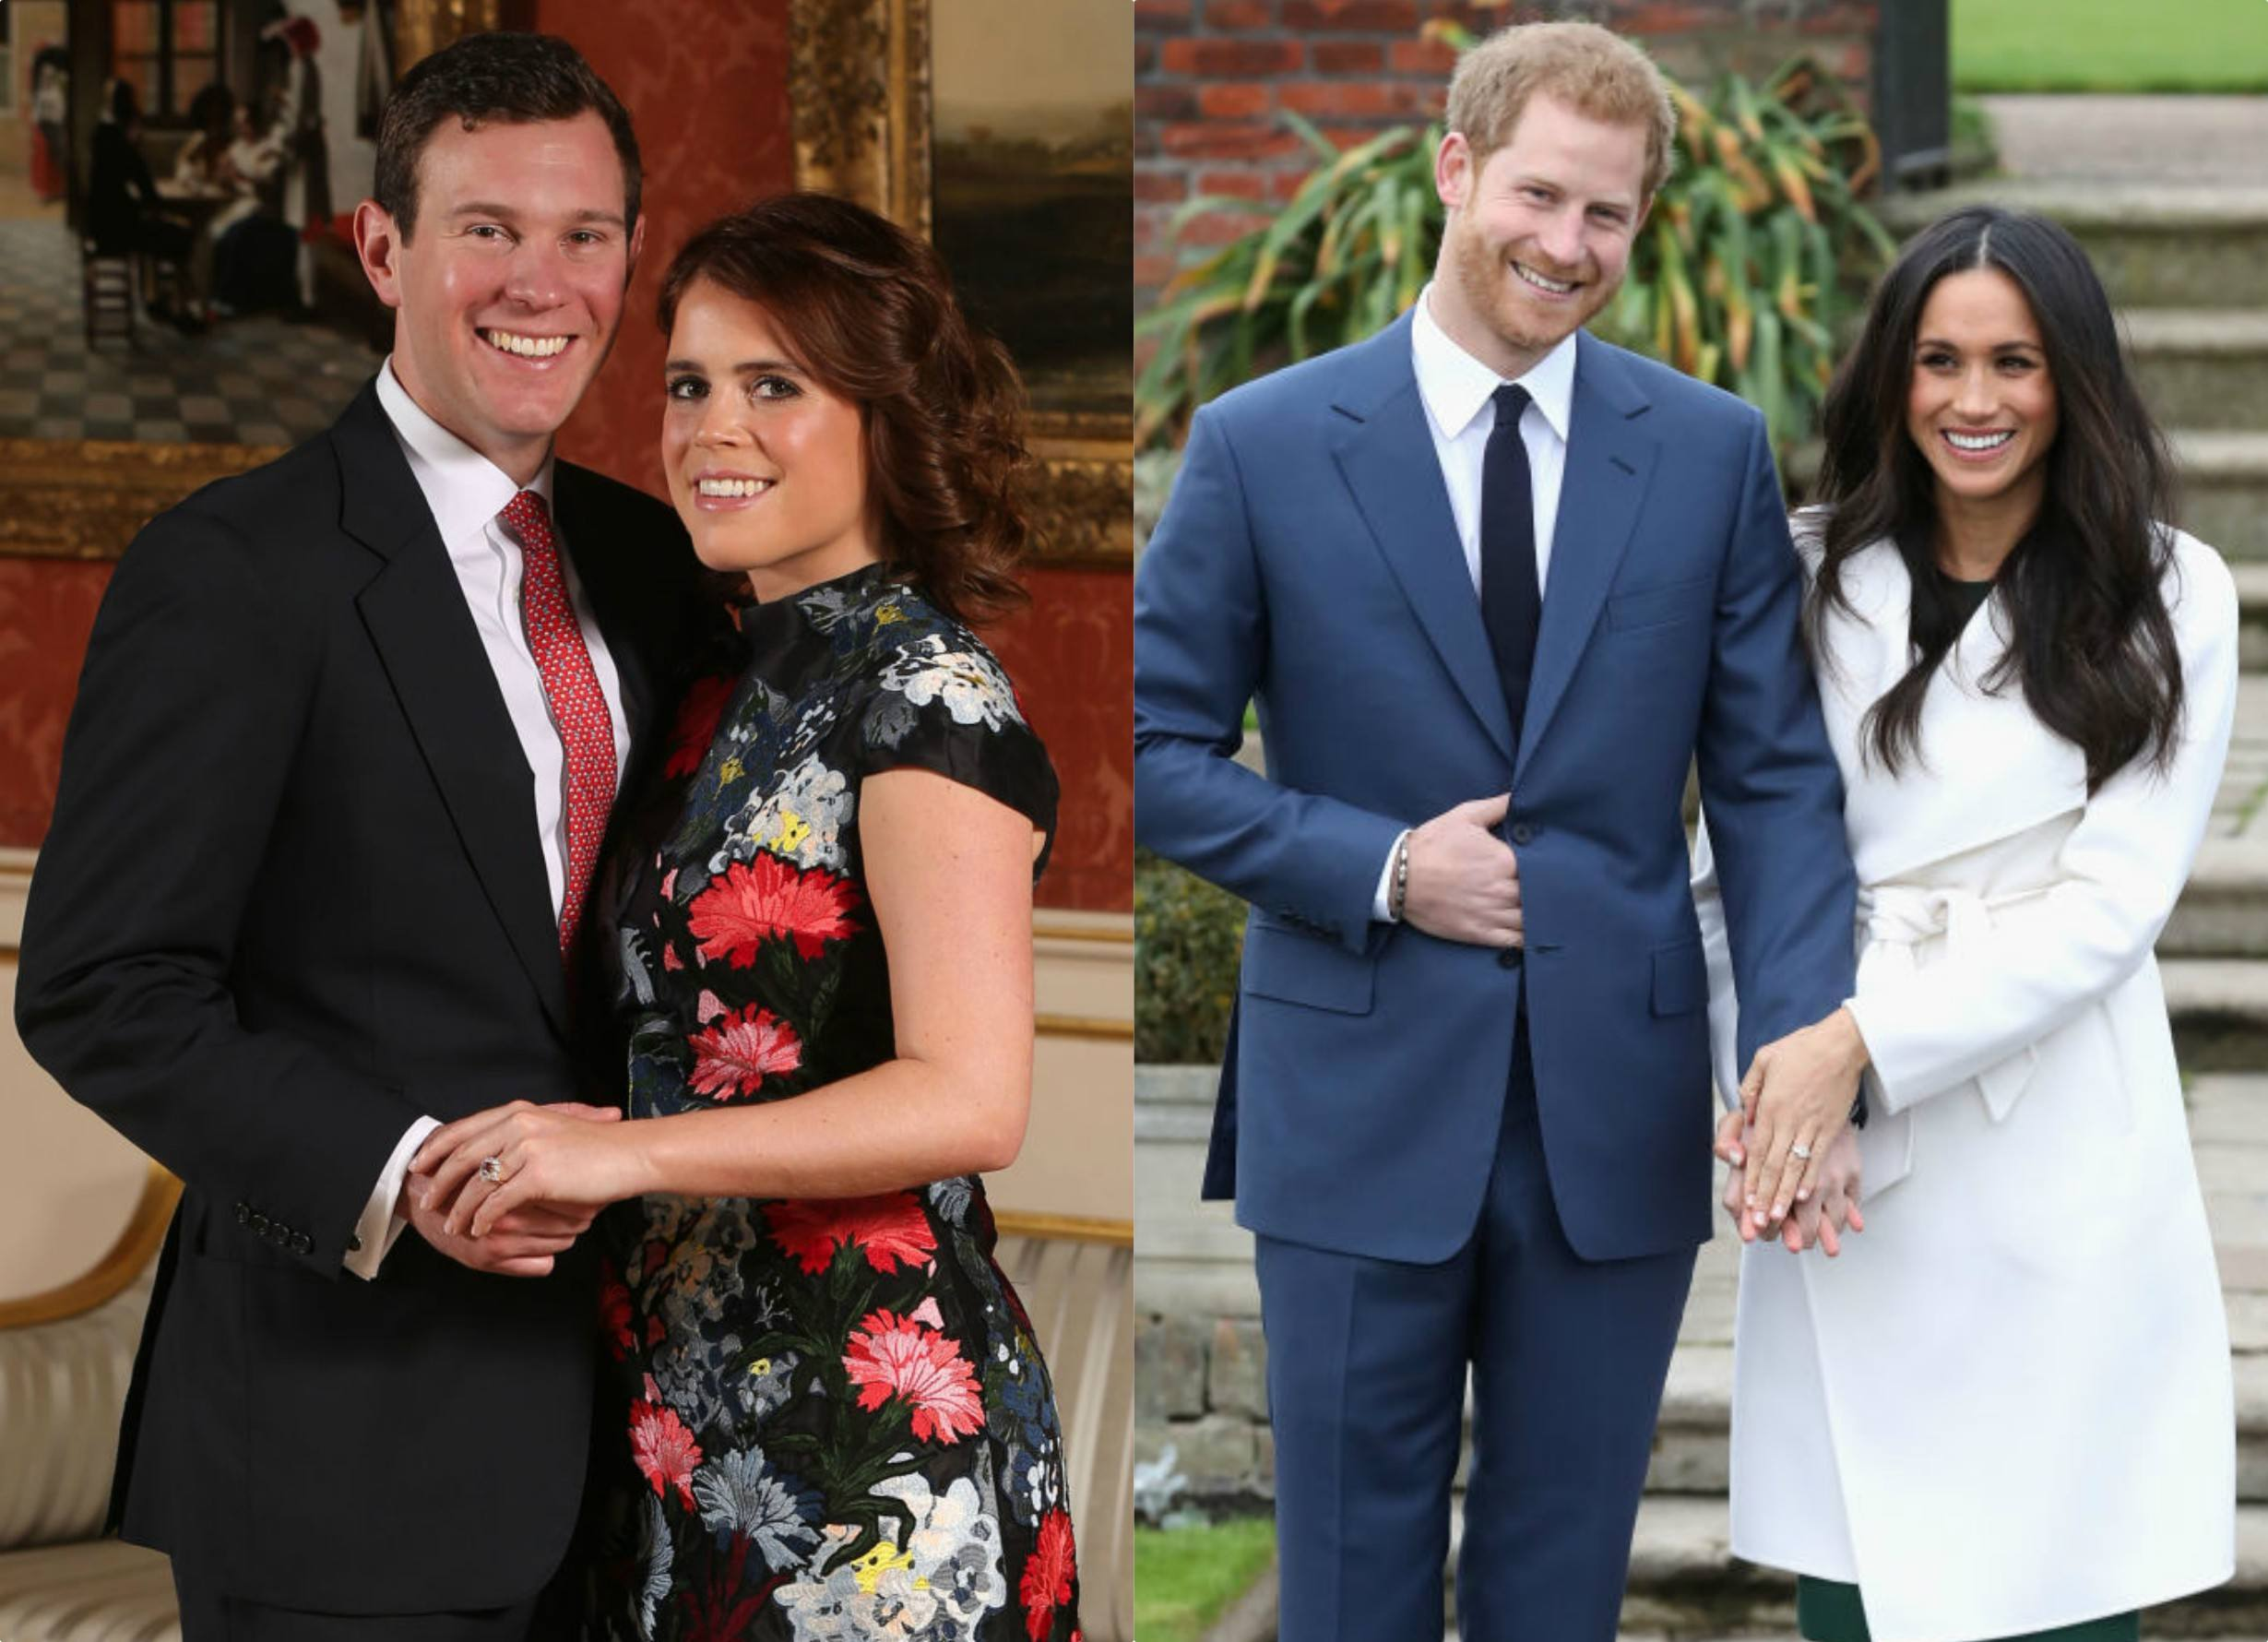 How Princess Eugenies Royal Wedding Will Compare To Meghan Markle